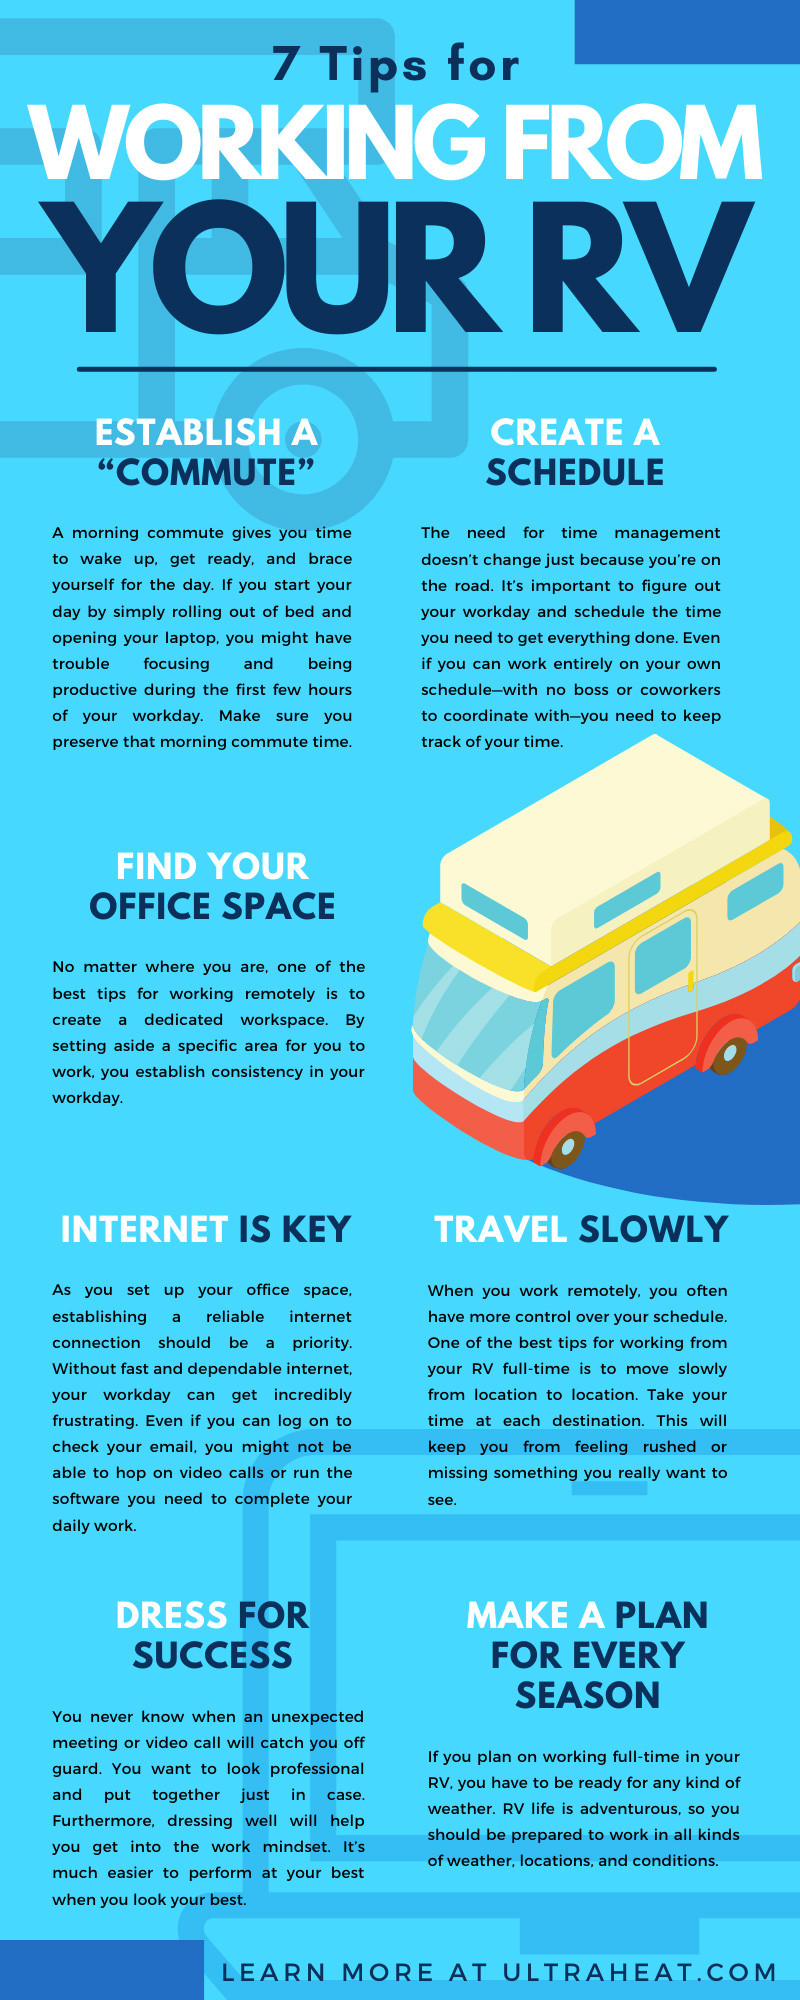 7 Tips for Working From Your RV